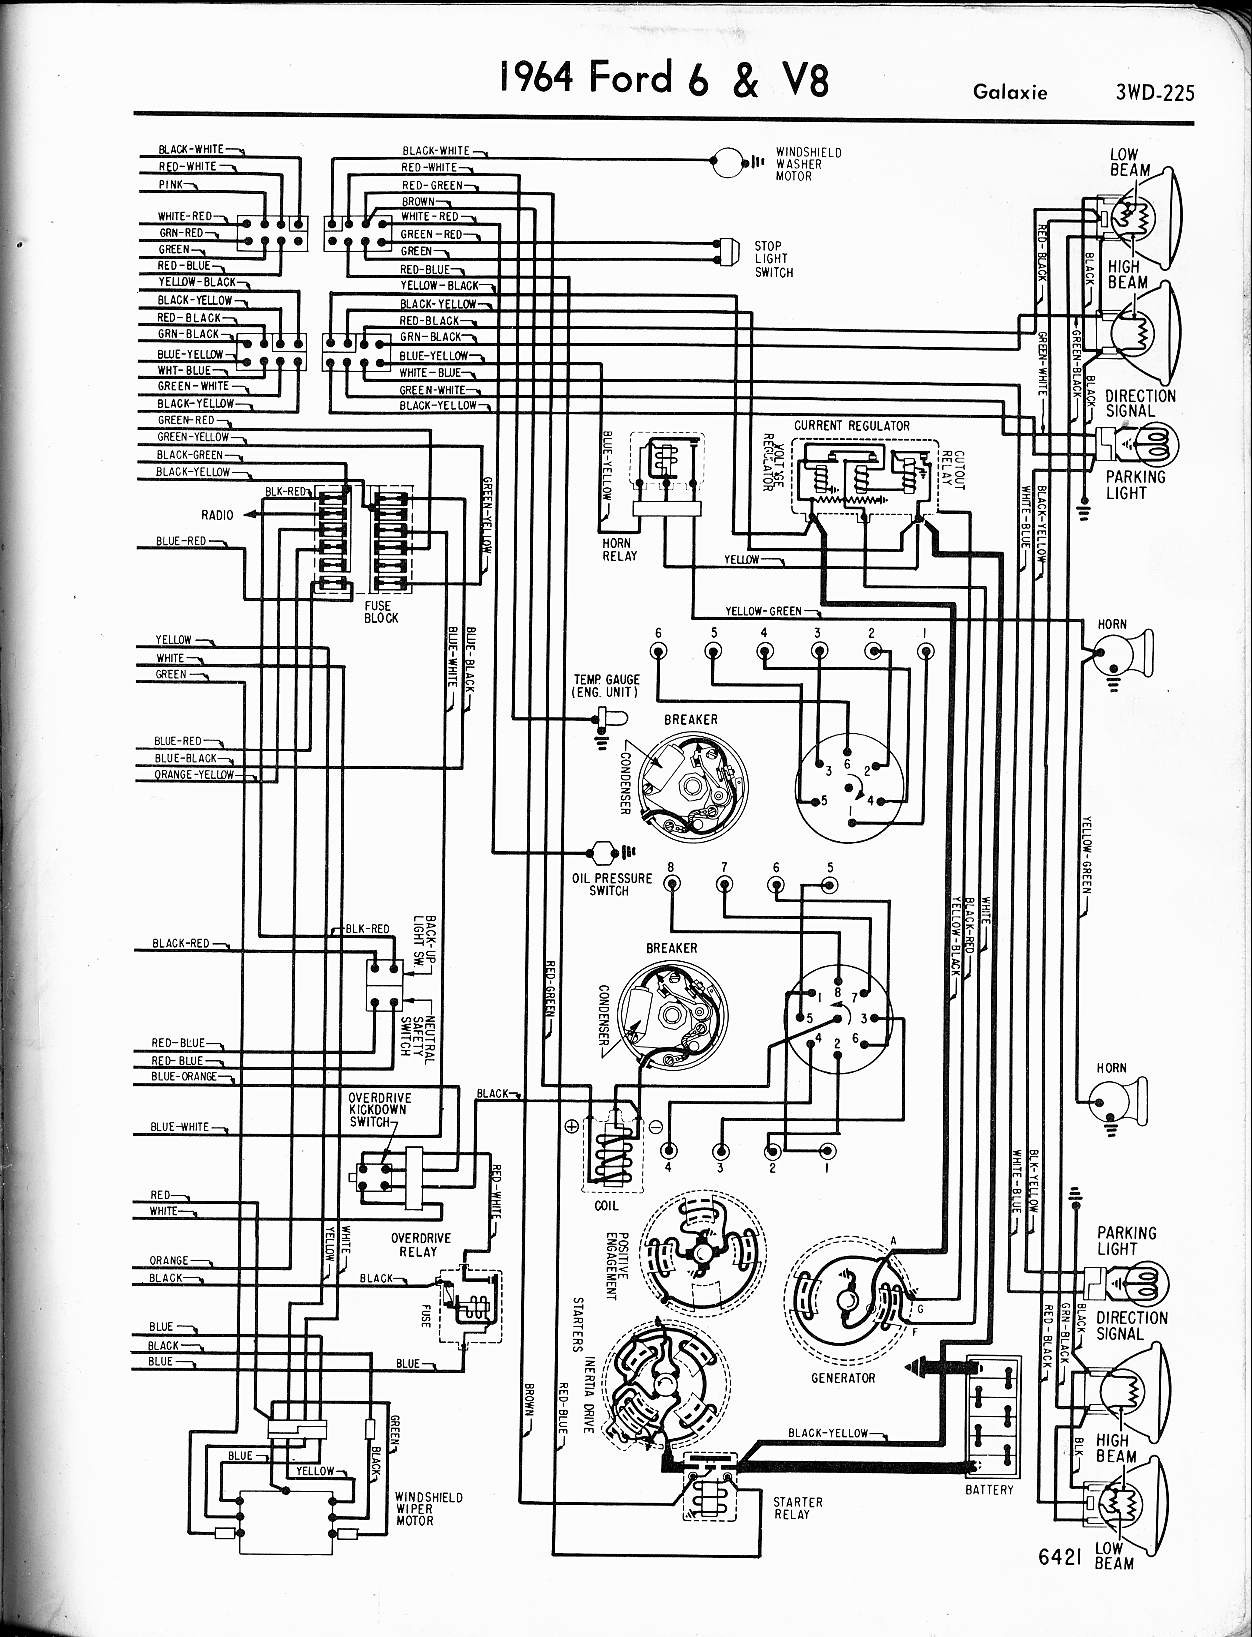 Ford Transit Engine Diagram 57 65 ford Wiring Diagrams – My Wiring ...